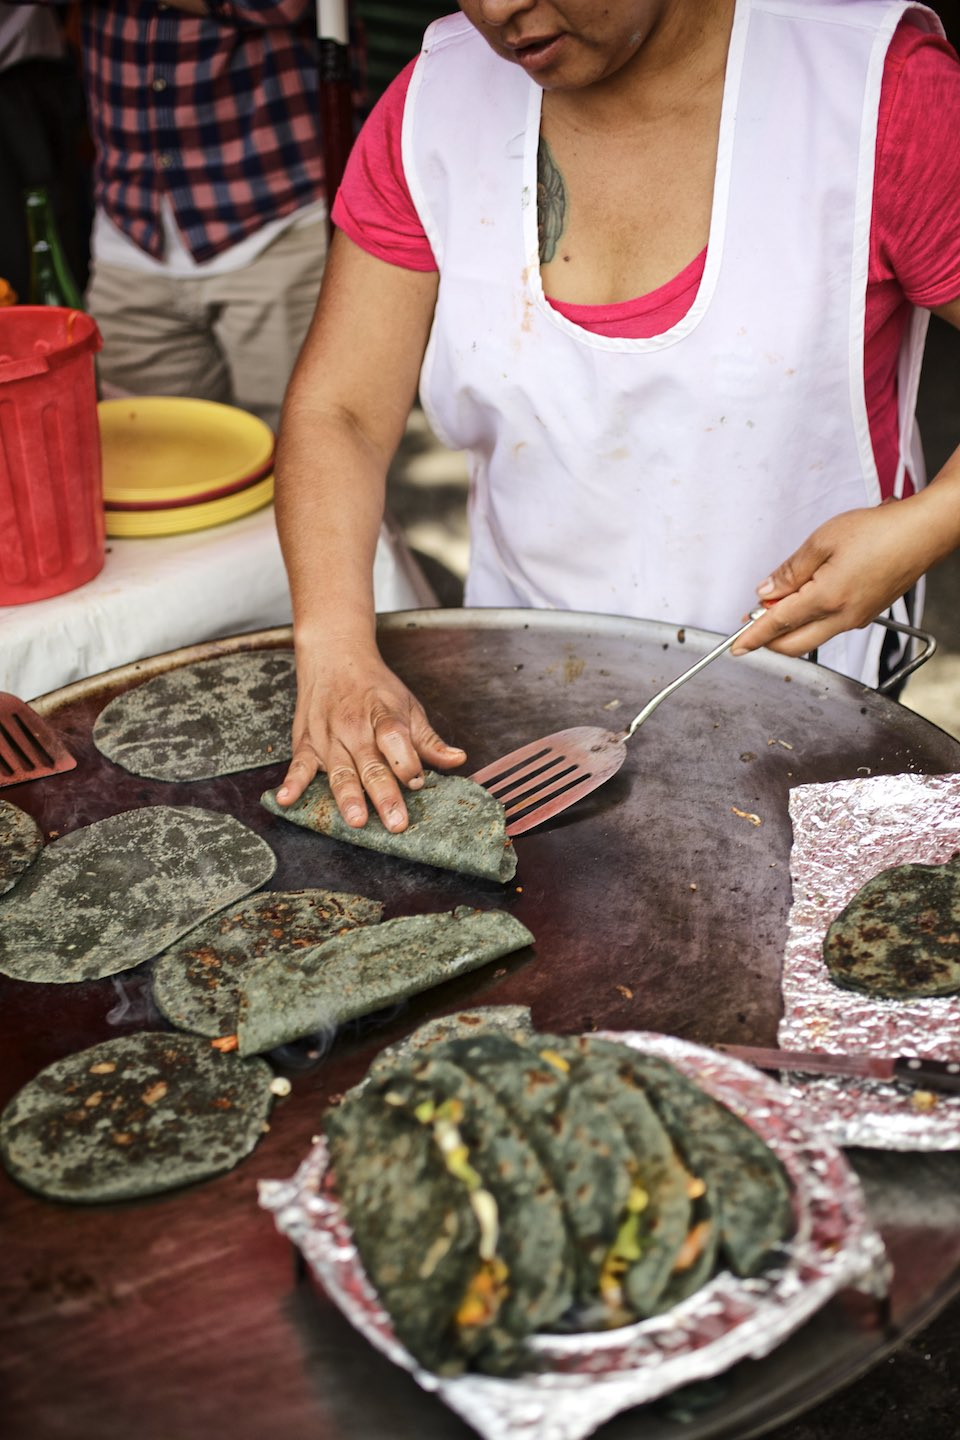 Chef preparing blue corn tacos on a Plancha.